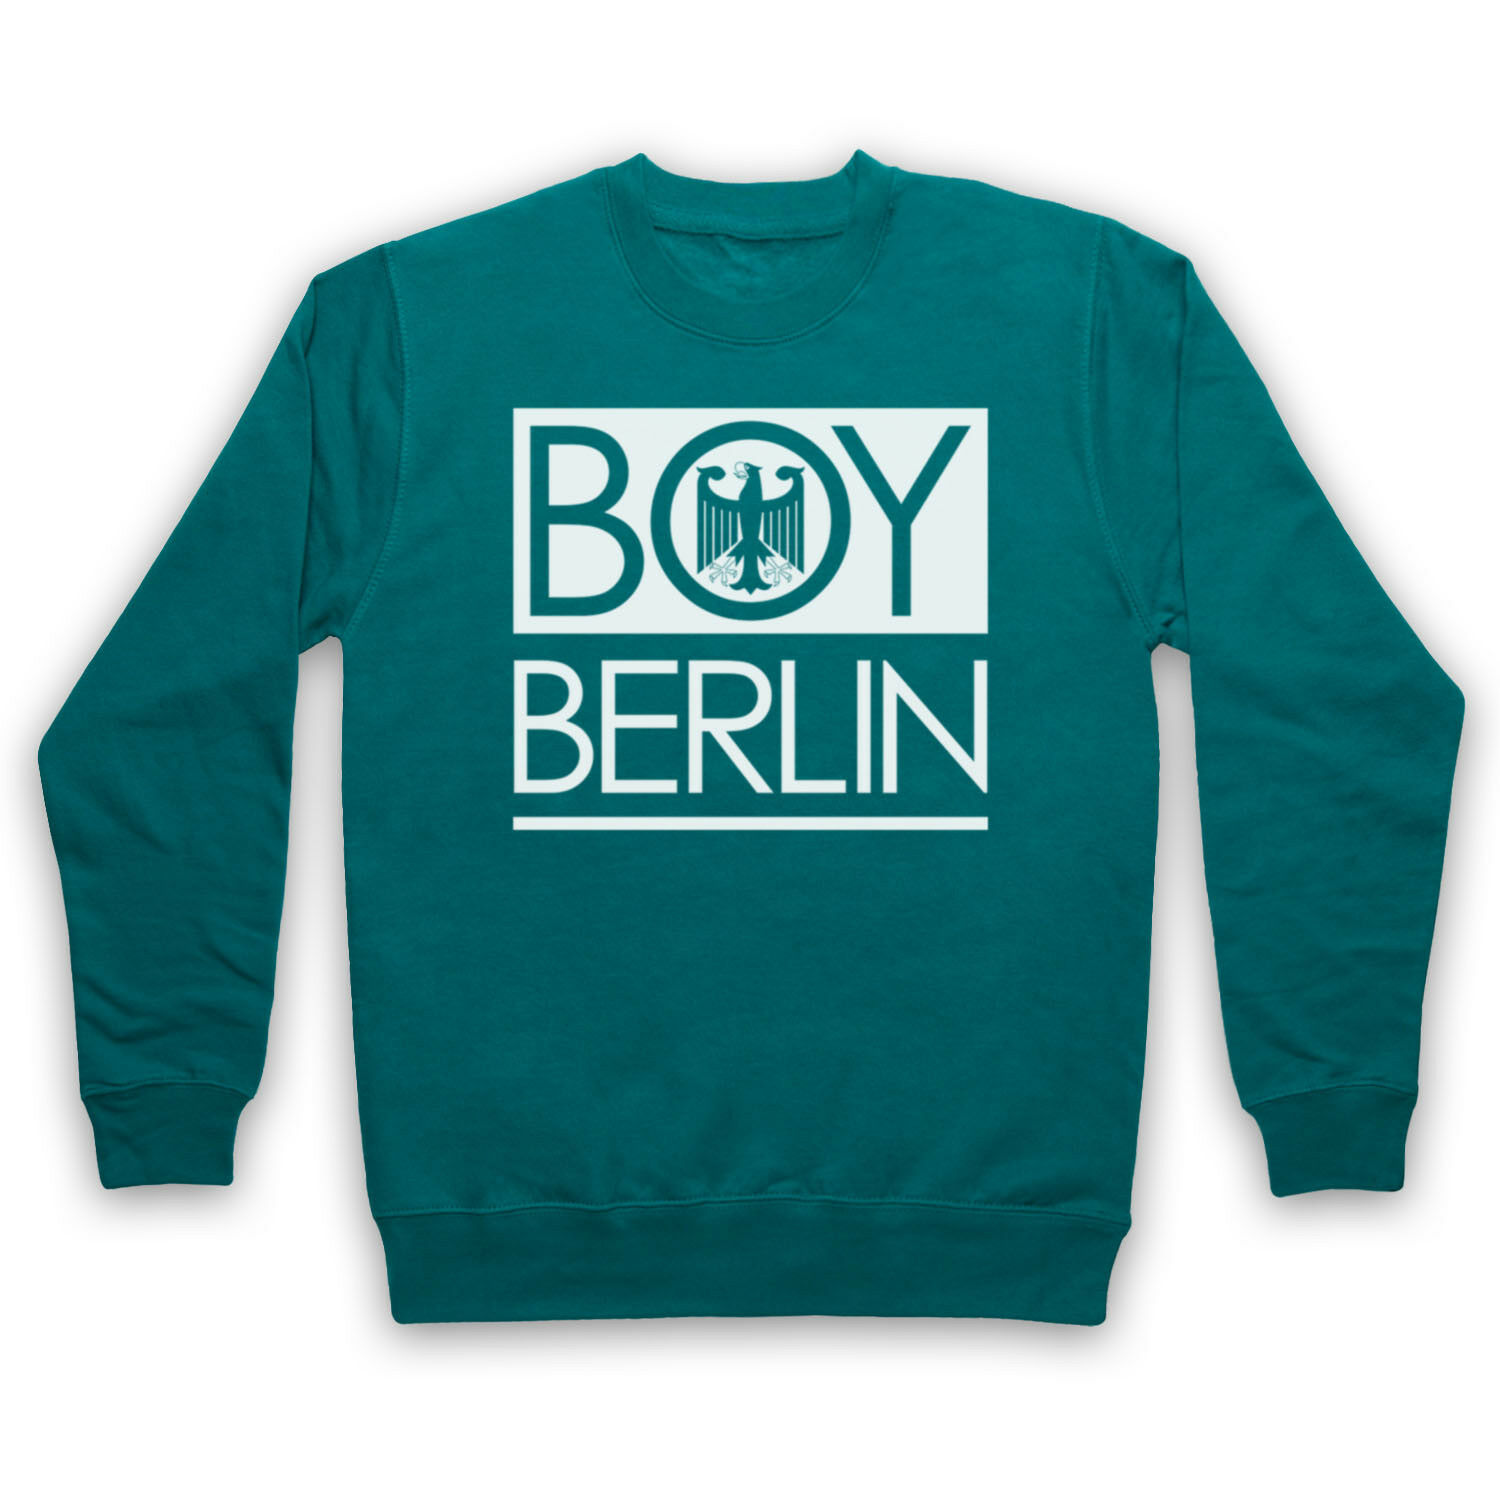 Boy Berlin allemand aigle Funny London Hipster London Funny Parodie Adultes Enfants Sweat 2b05f3